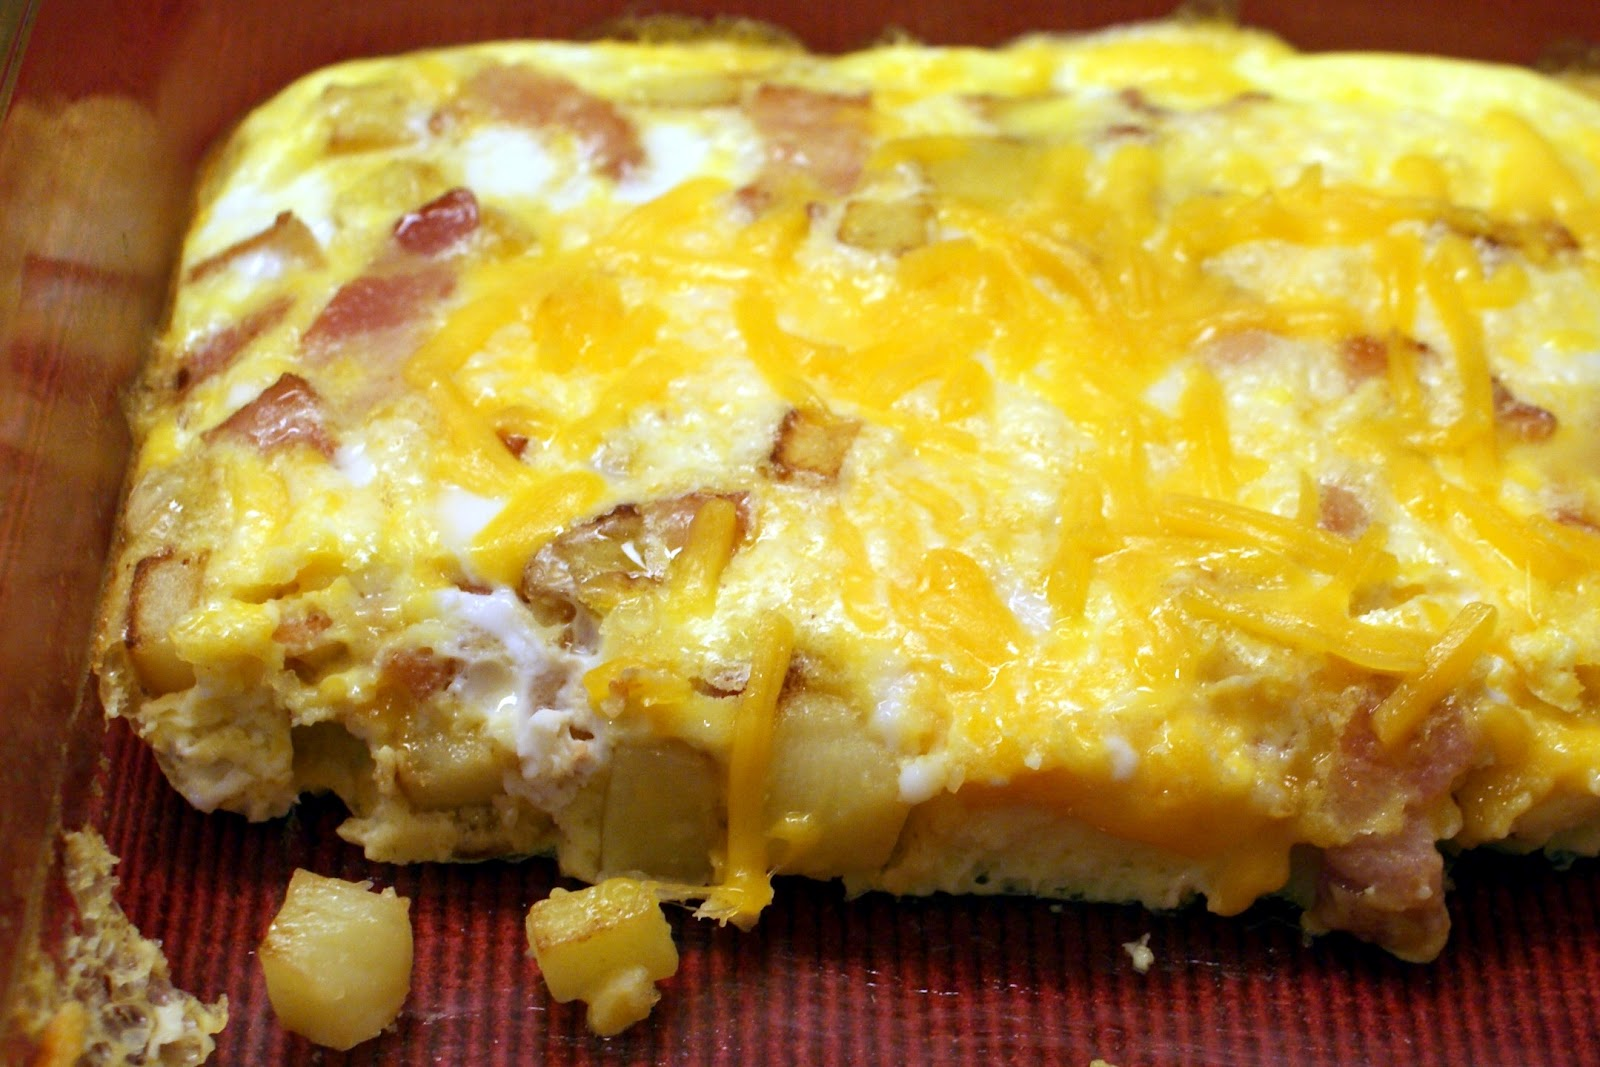 The Baker S Mann Potato Bacon And Cheese Omelet